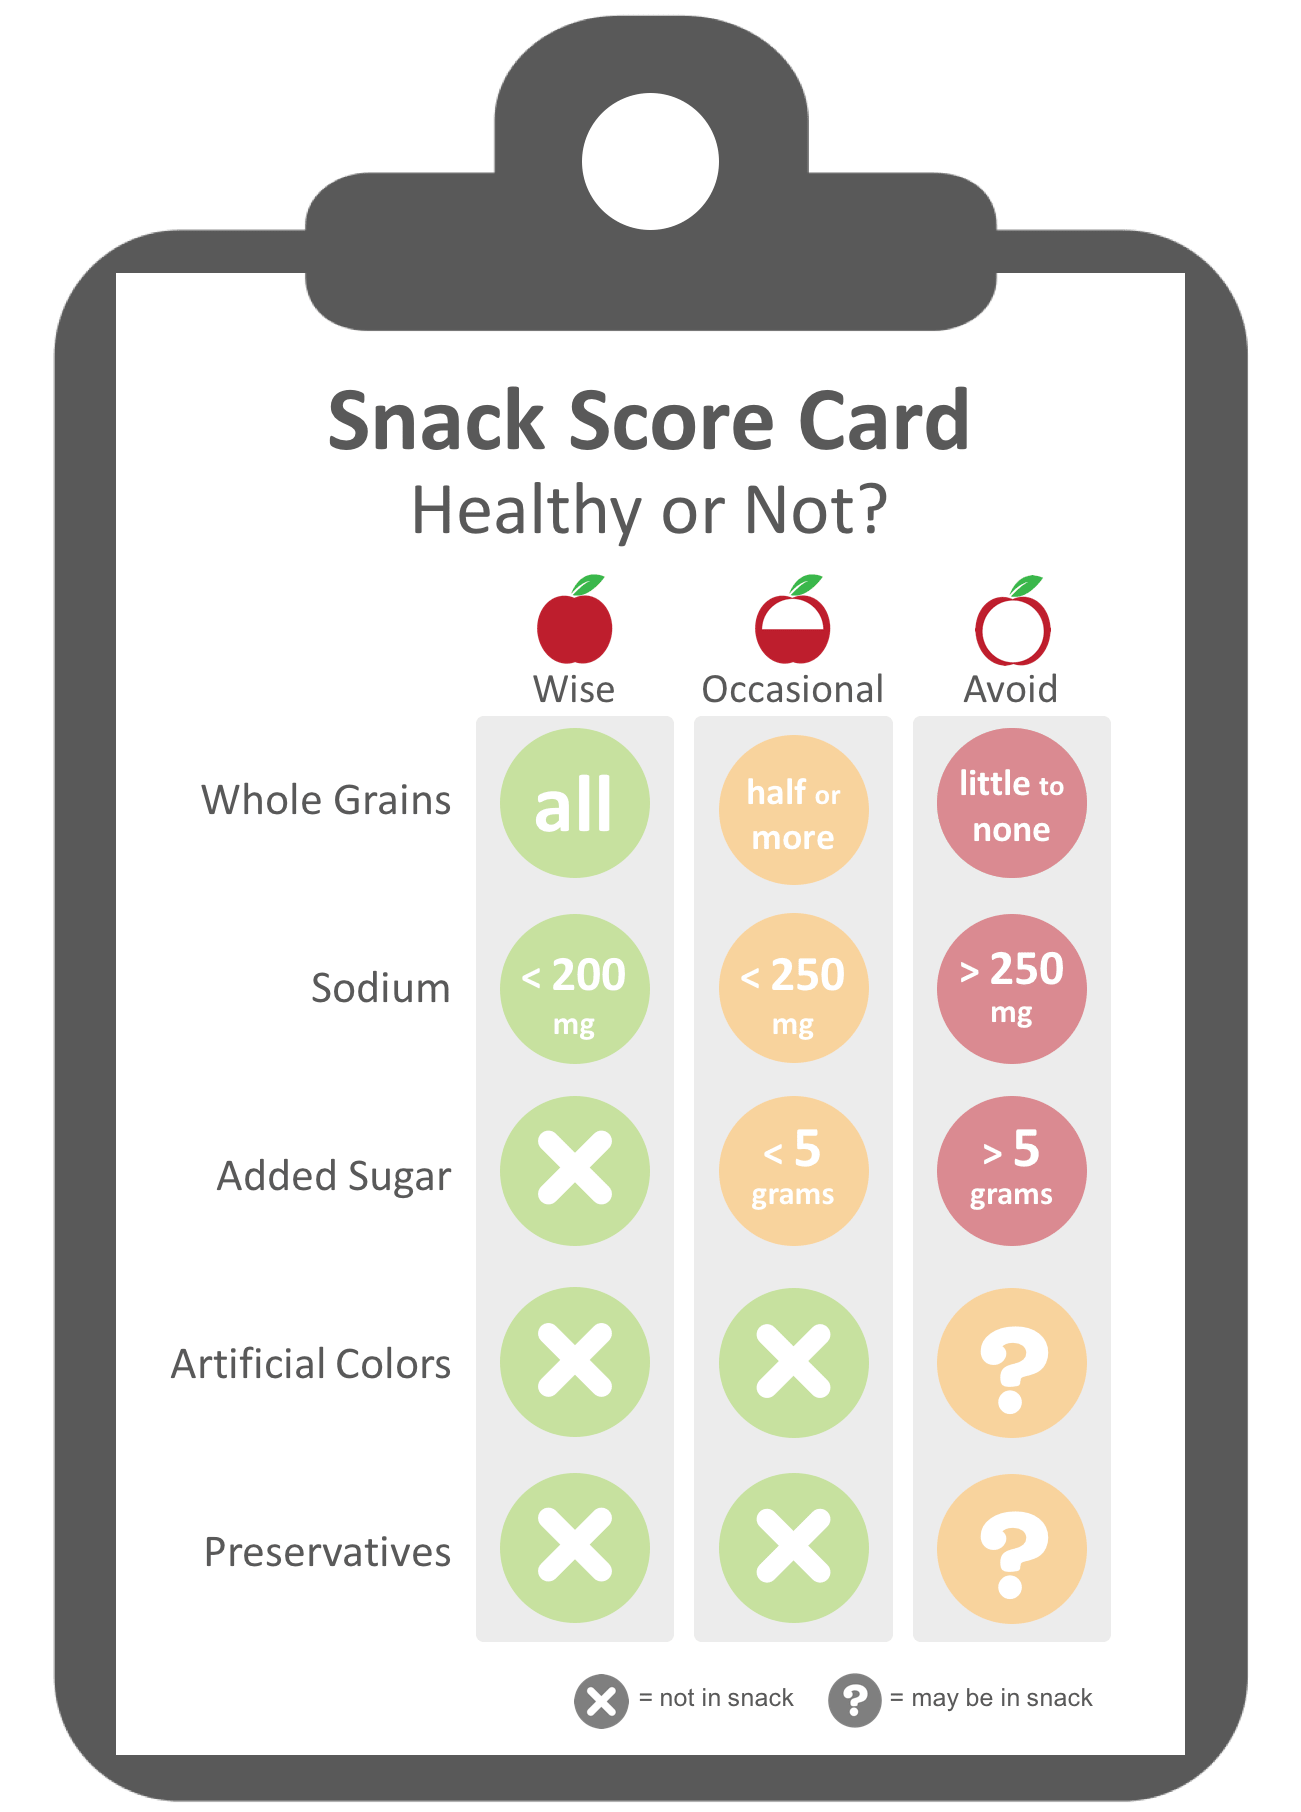 Evaluation criteria for healthy snacks